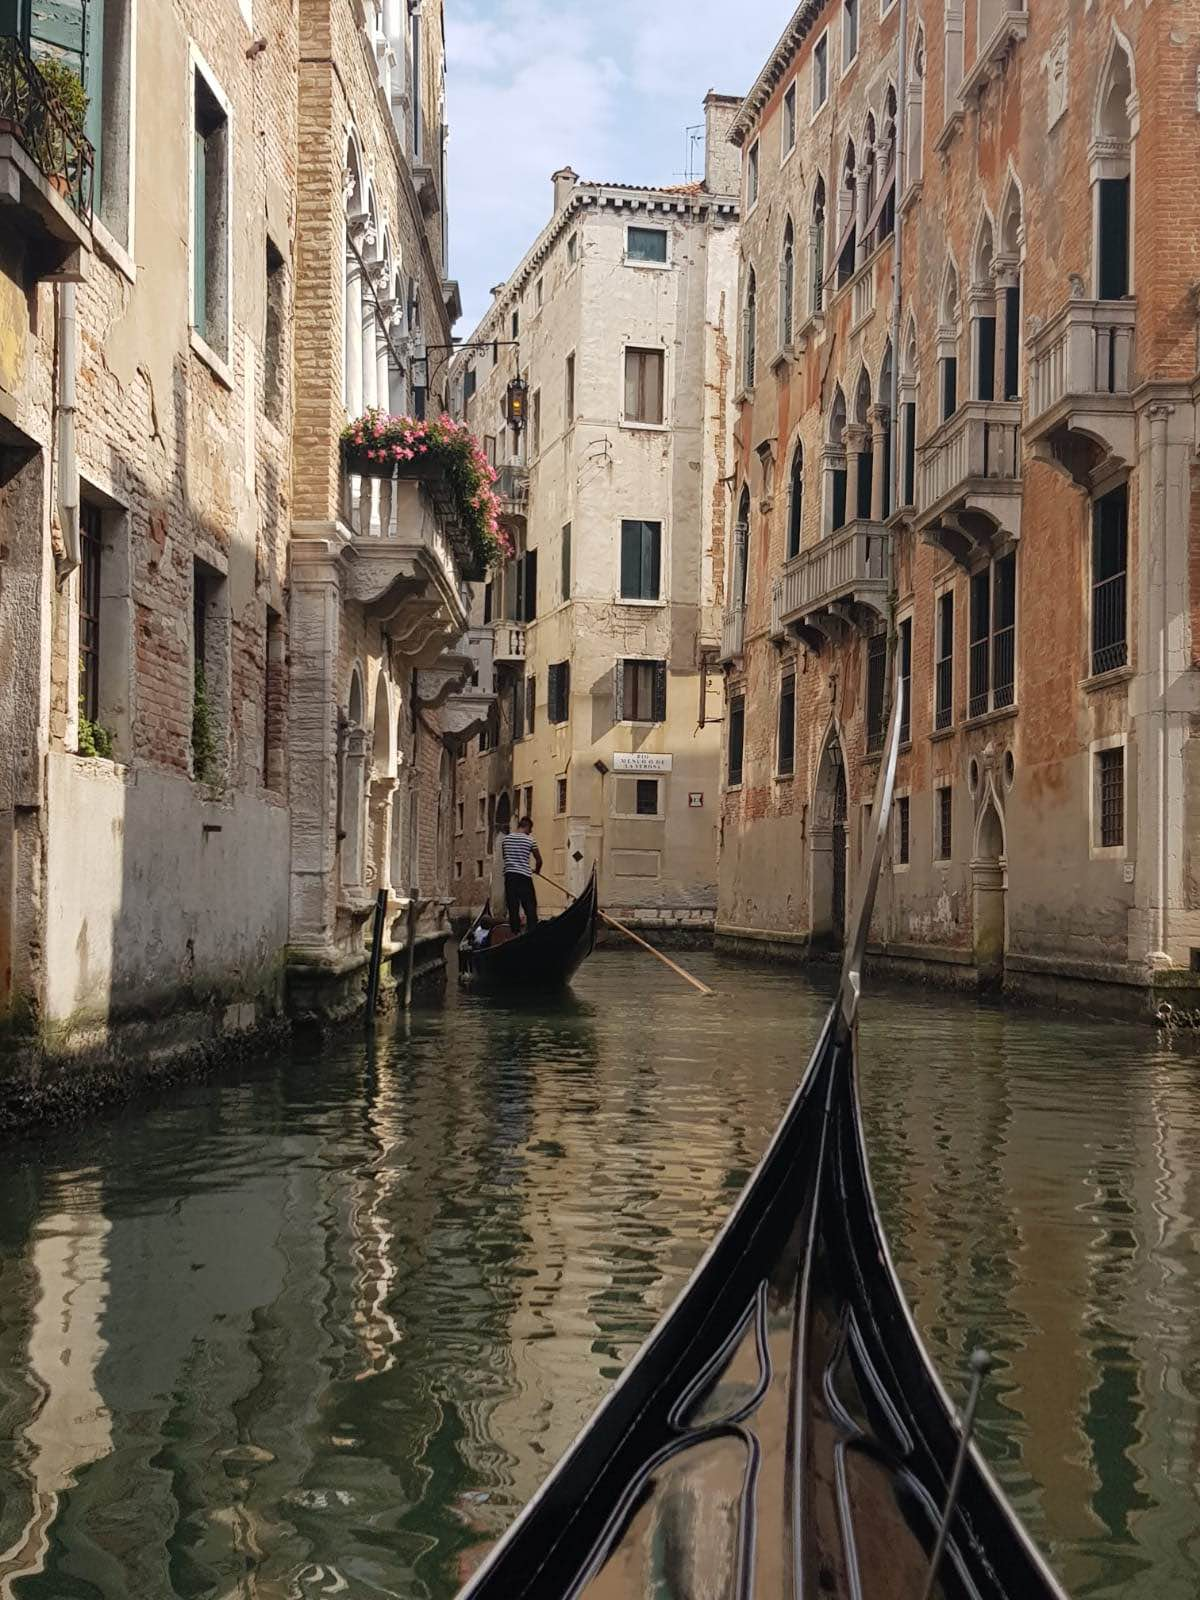 View of Venice from a gondola